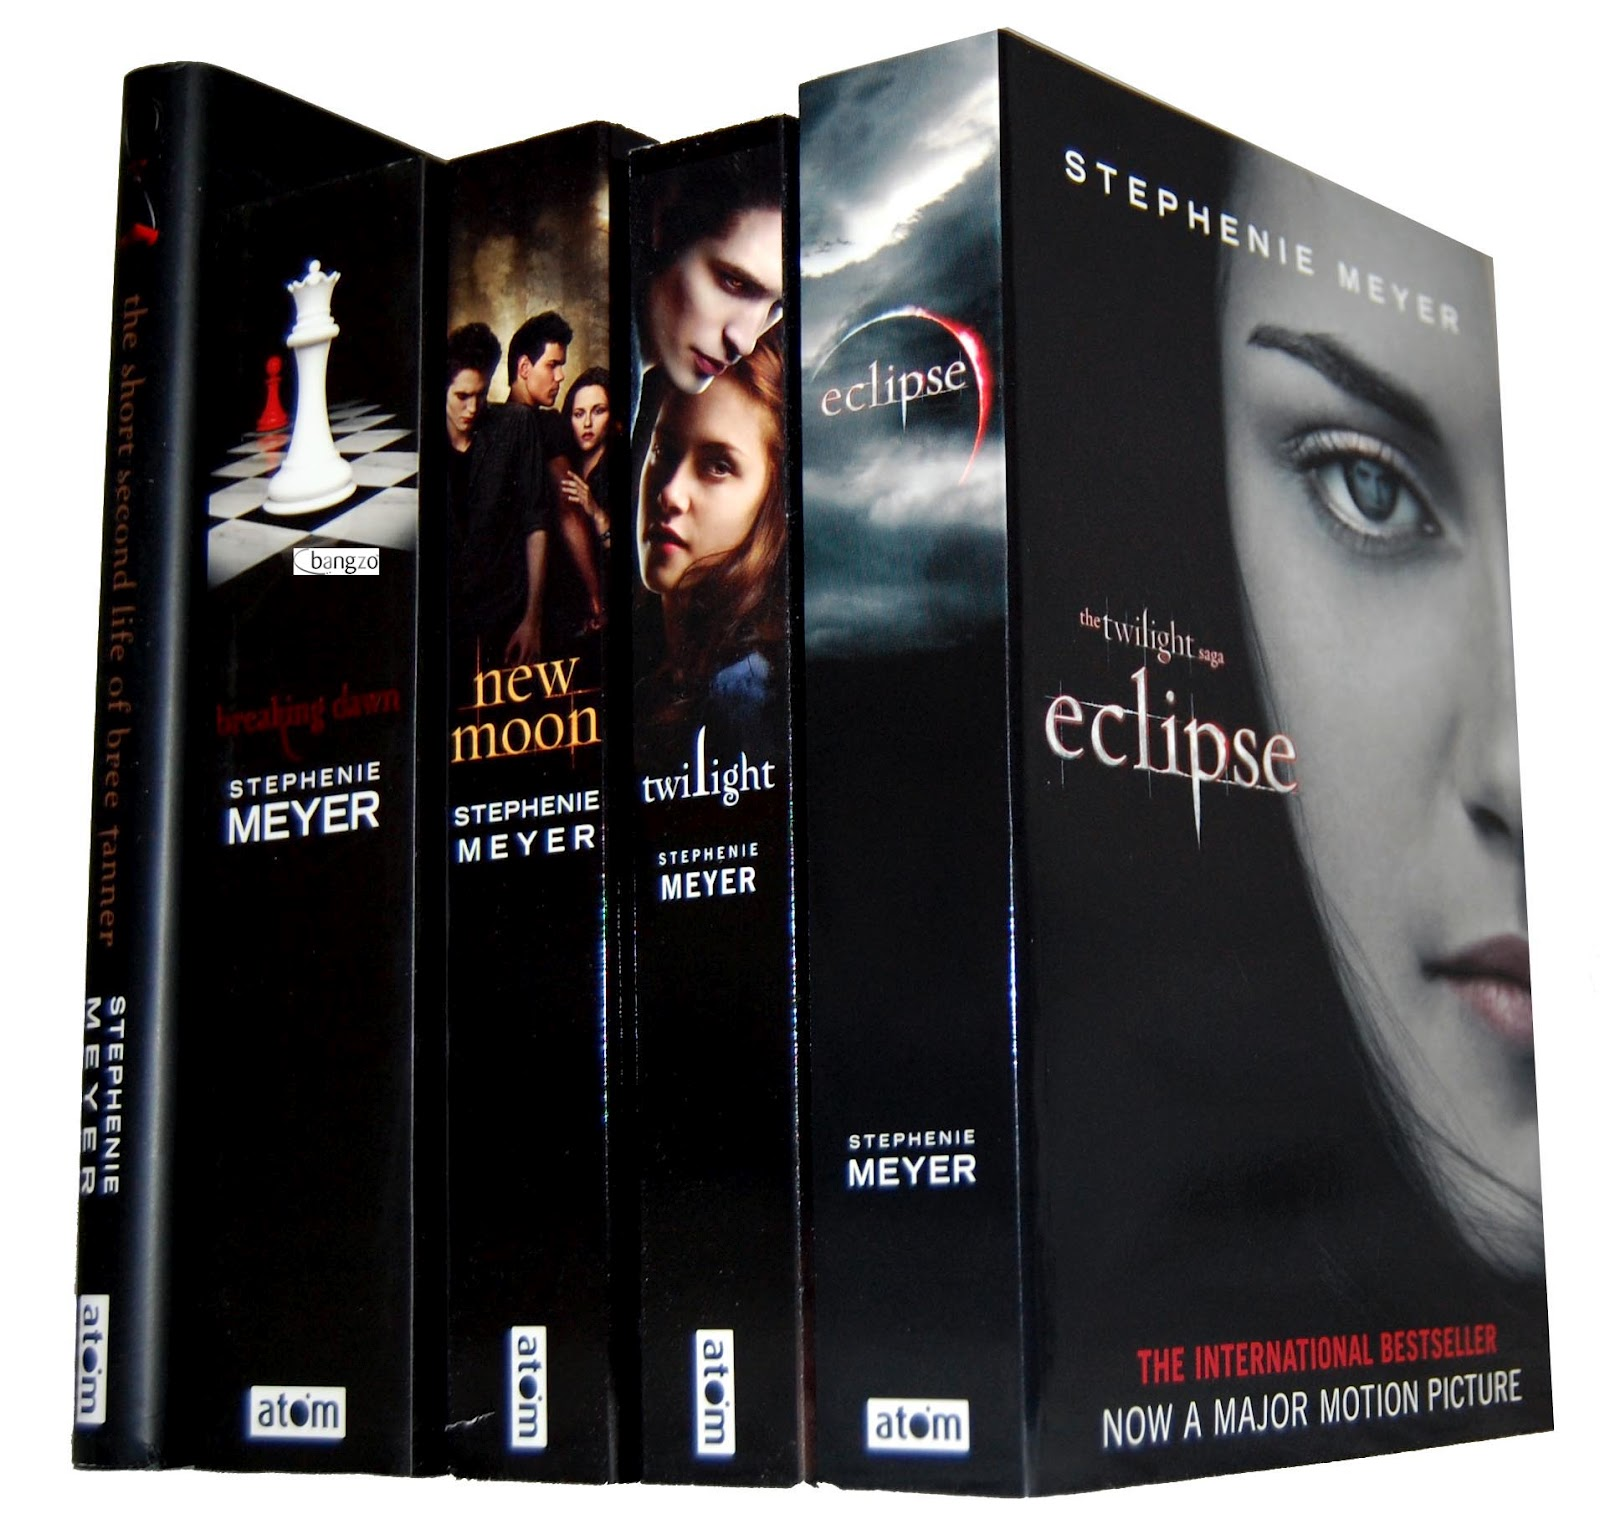 Read Twilight online free by Stephenie Meyer